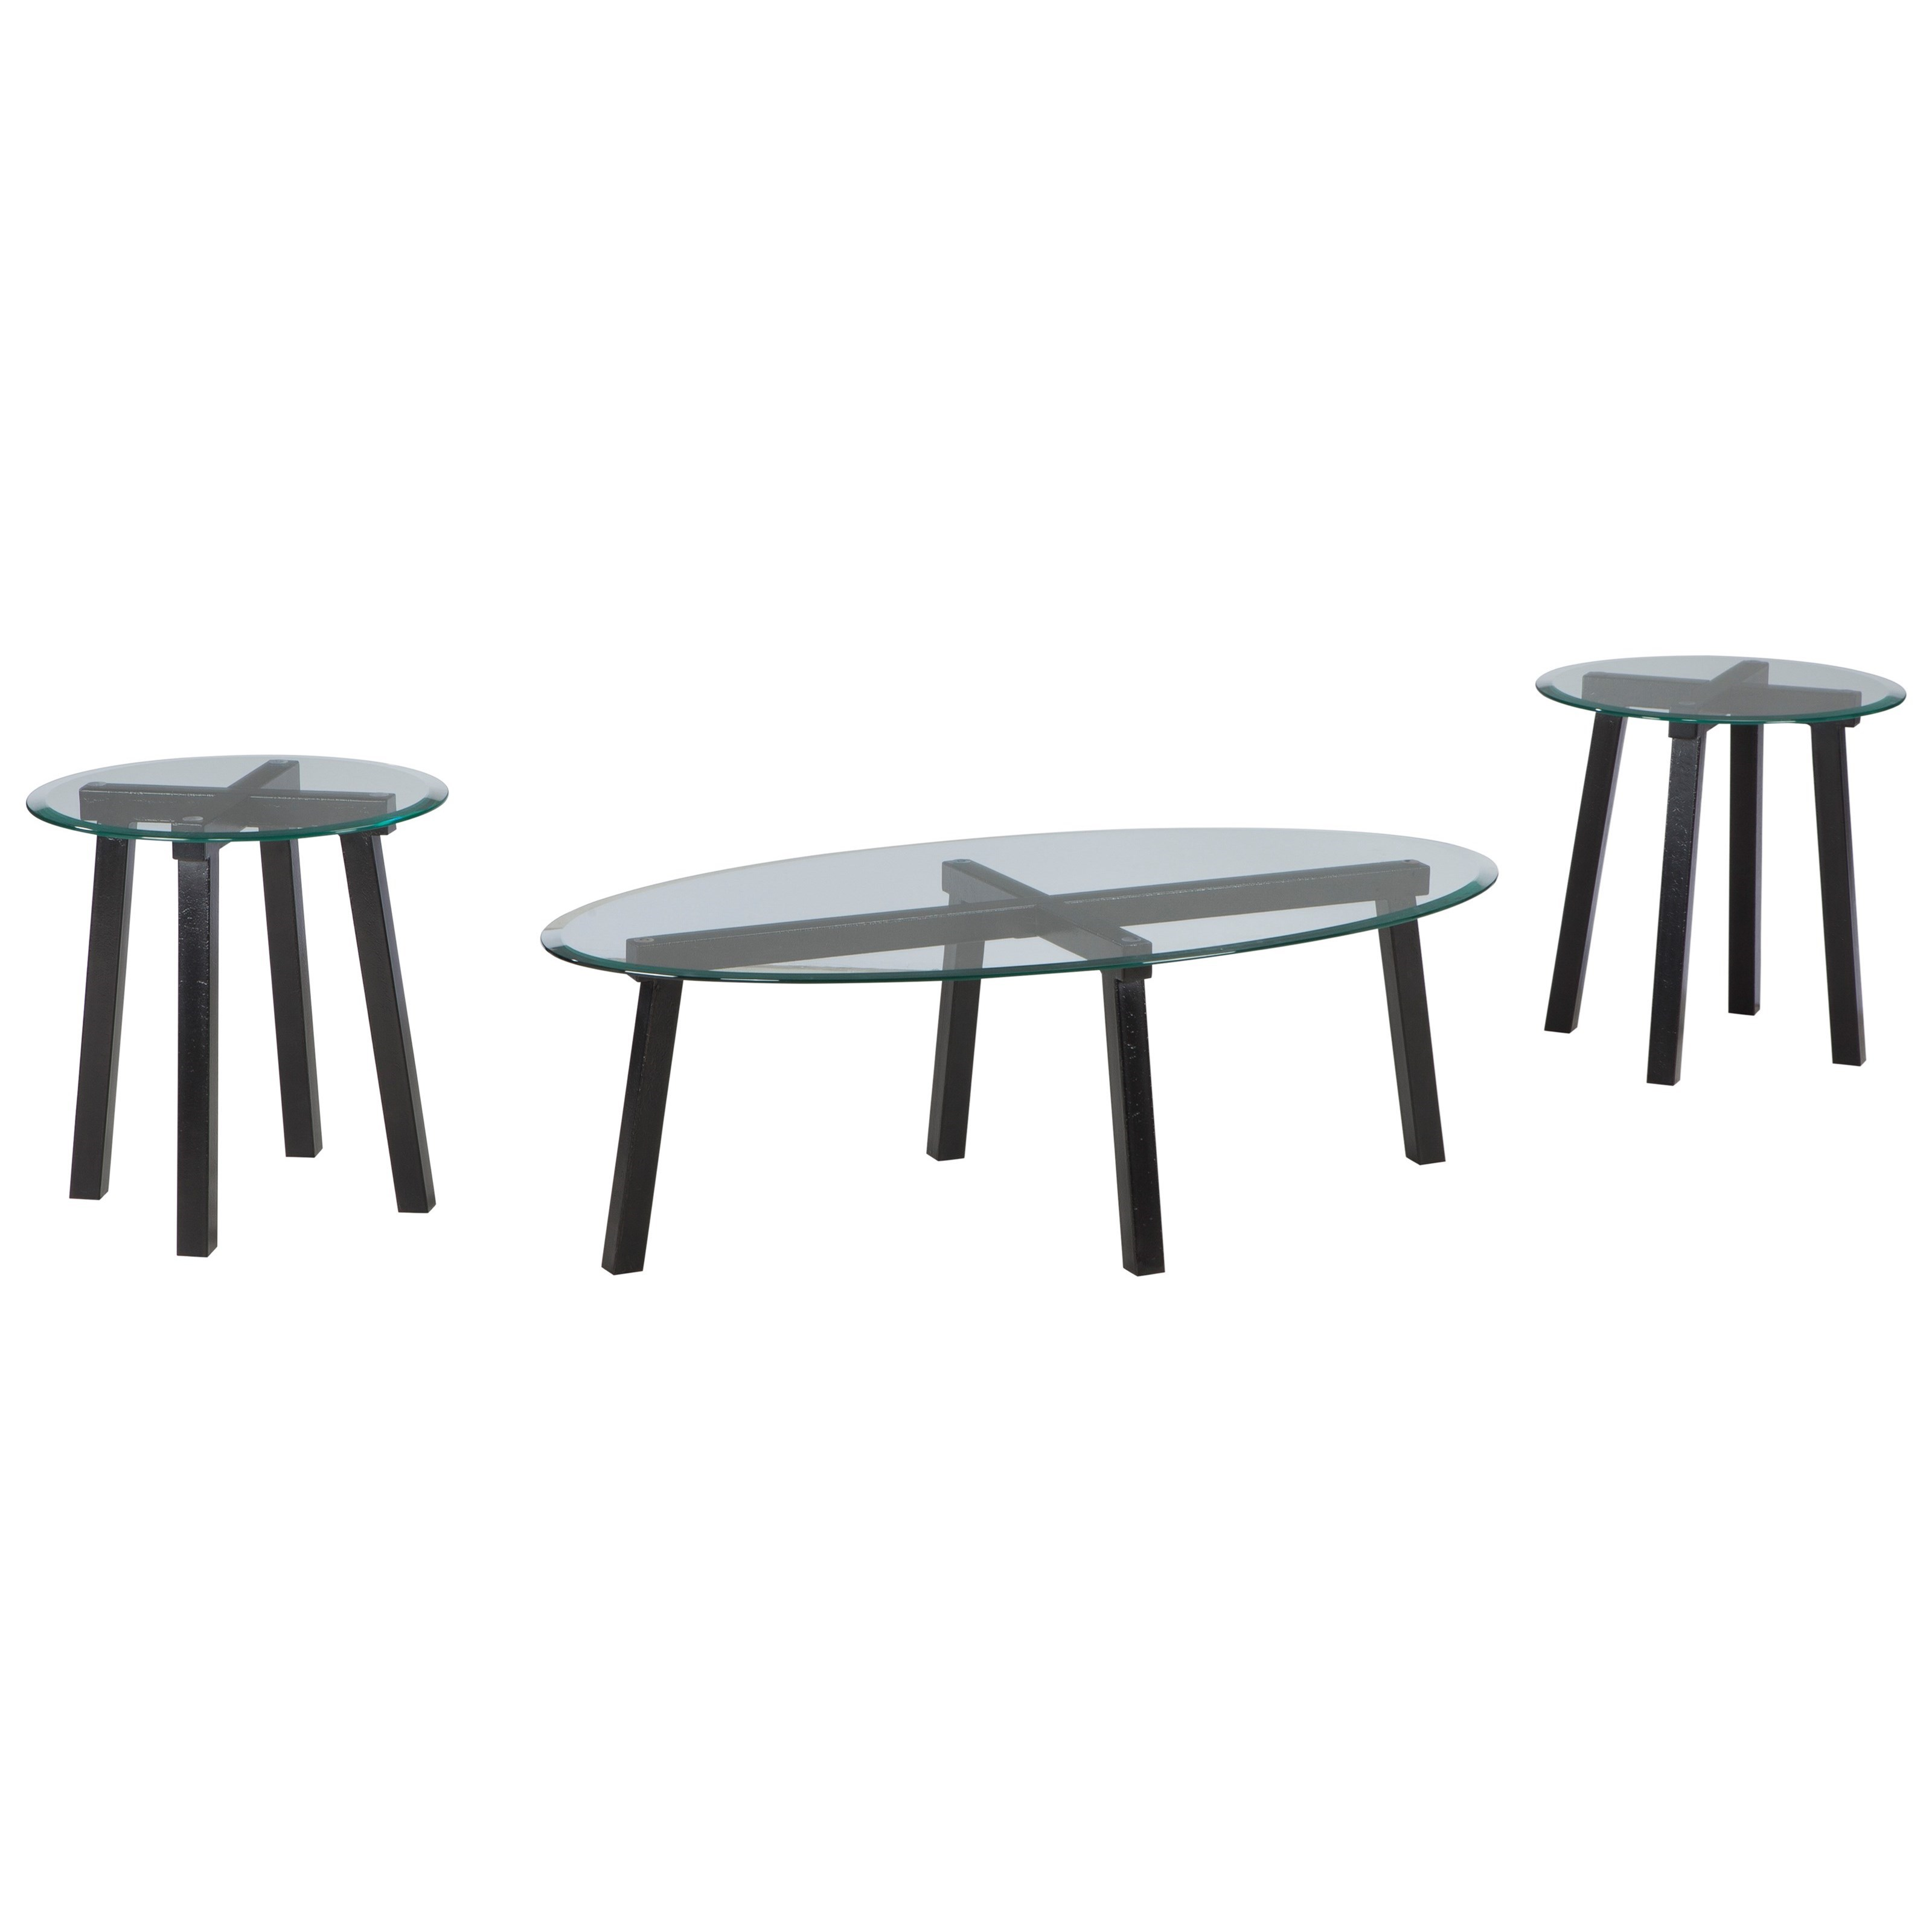 Signature Design by Ashley Iselle Occasional Table Set - Item Number: T132-13